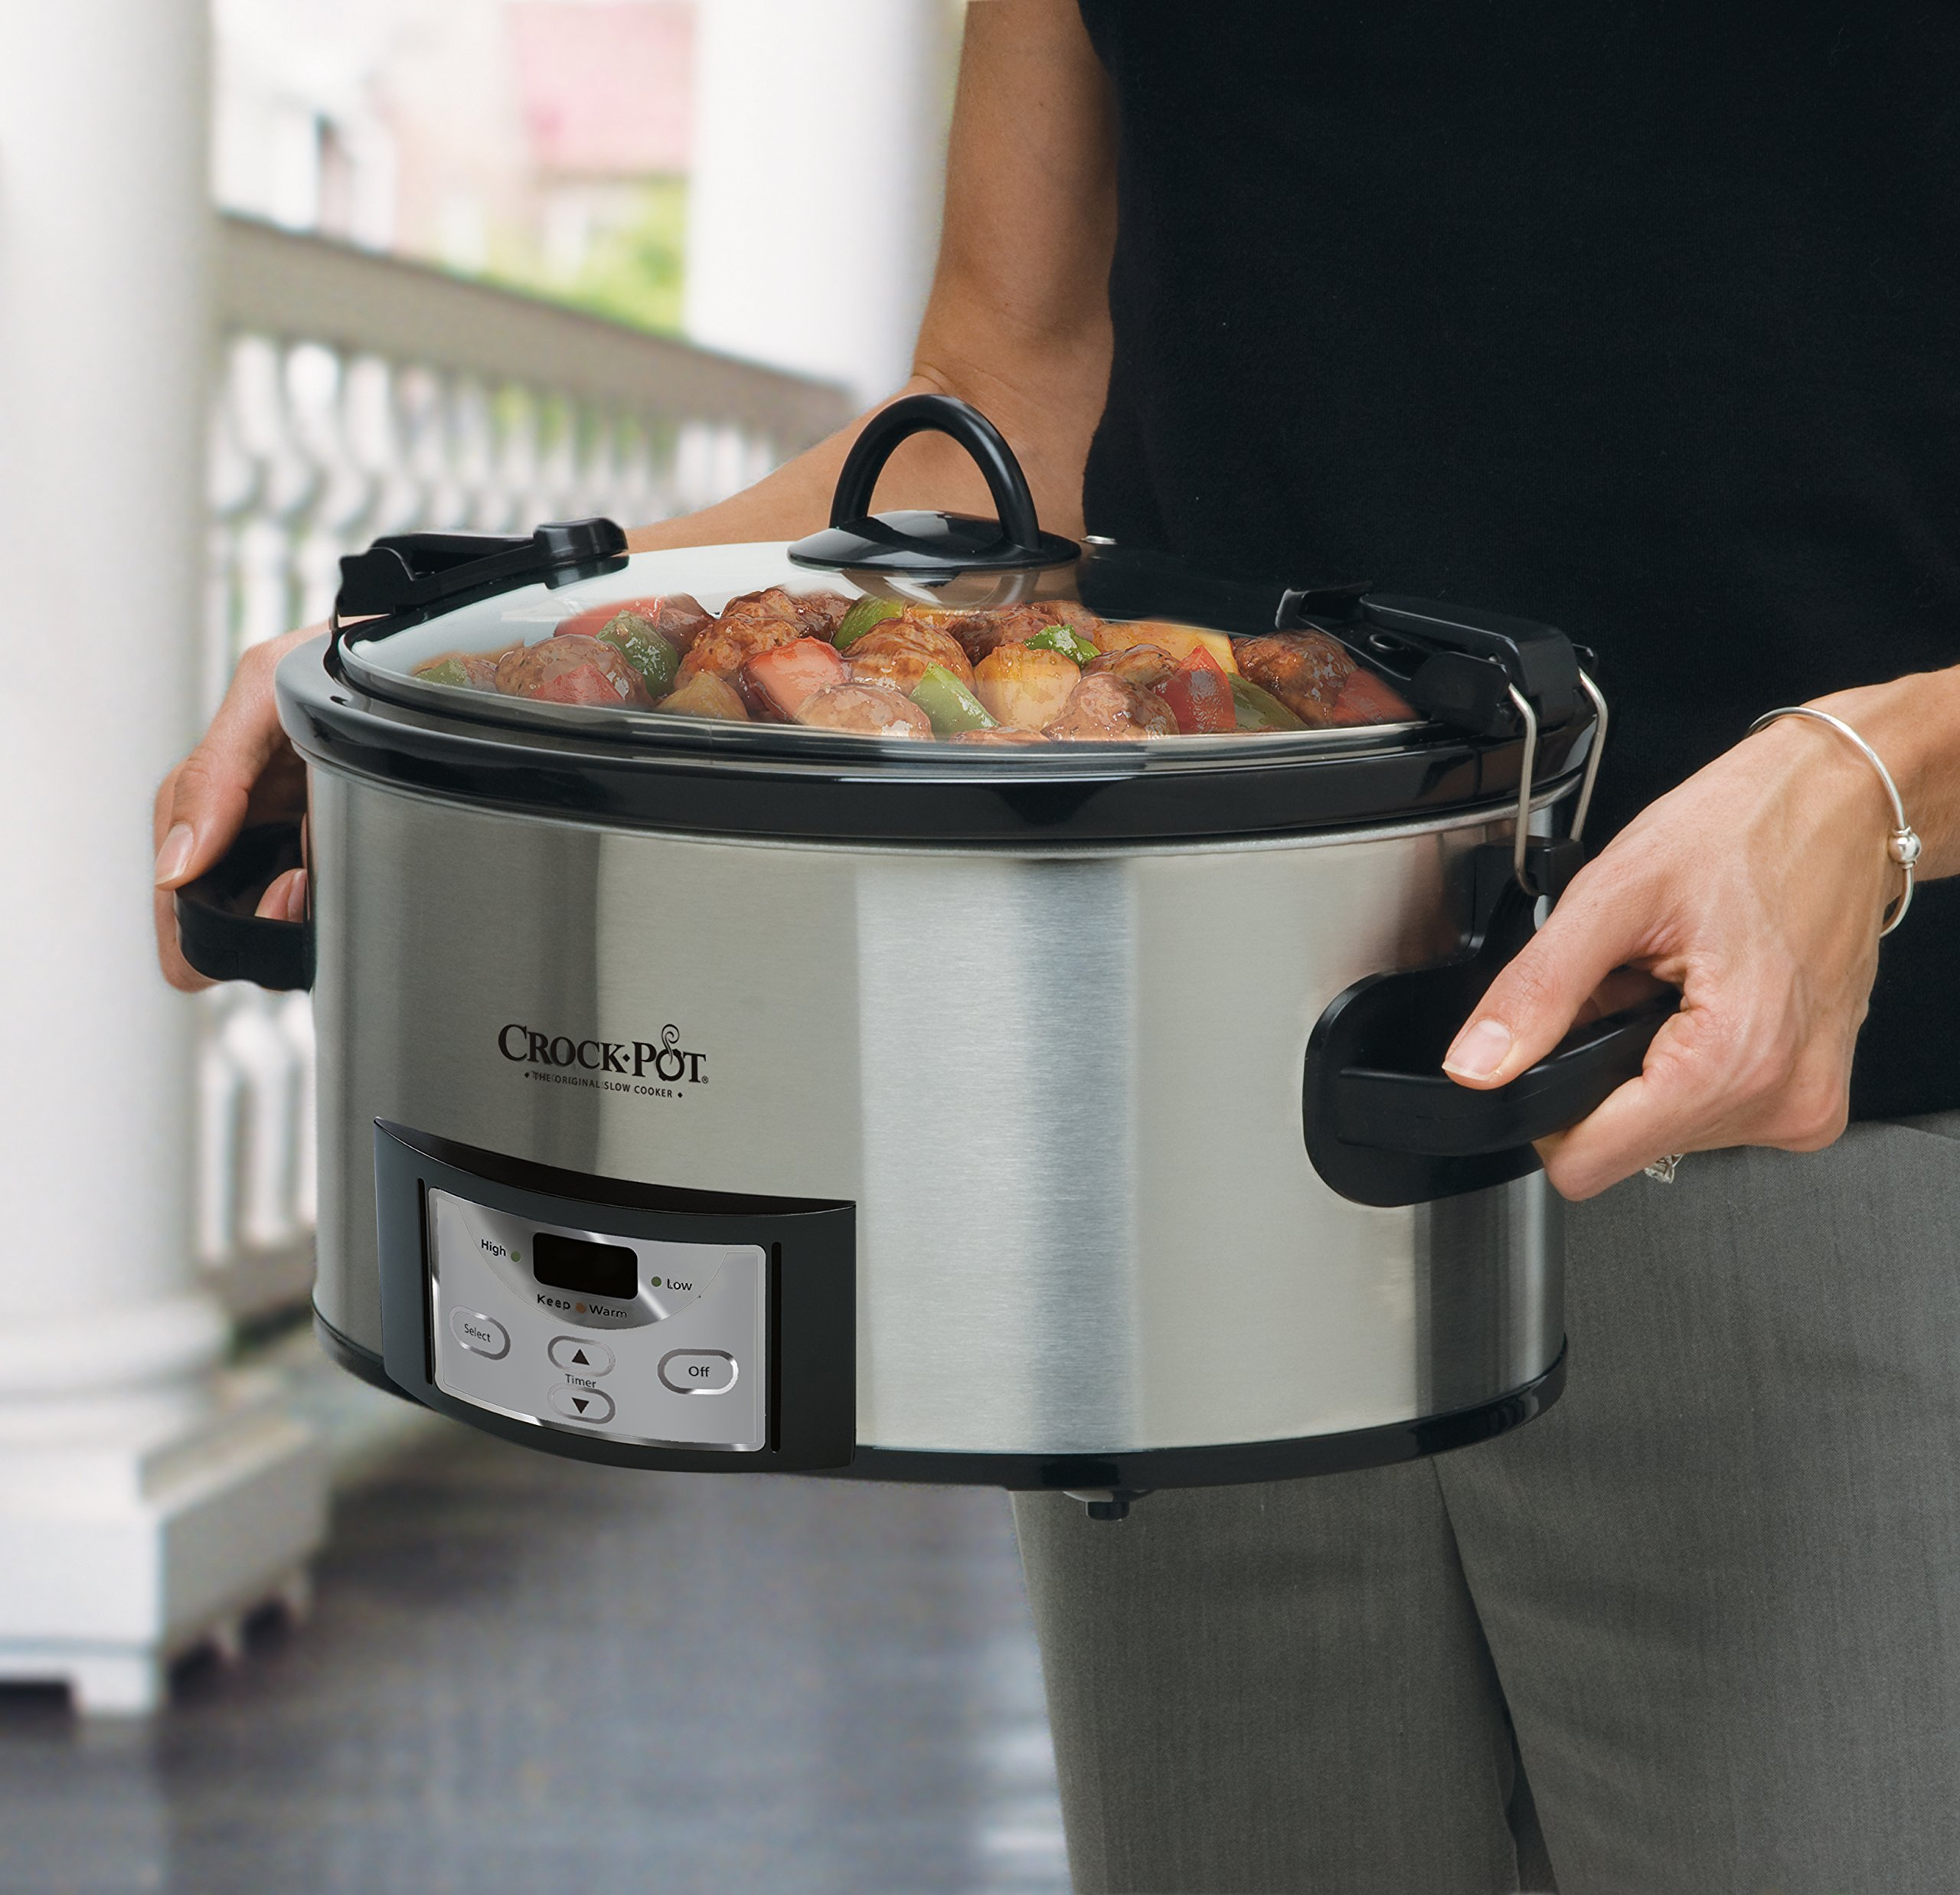 Crock-Pot 6-Quart Programmable Cook & Carry Slow Cooker with Digital Timer, Stainless Steel, SCCPVL610-S by Crock-Pot (Image #3)